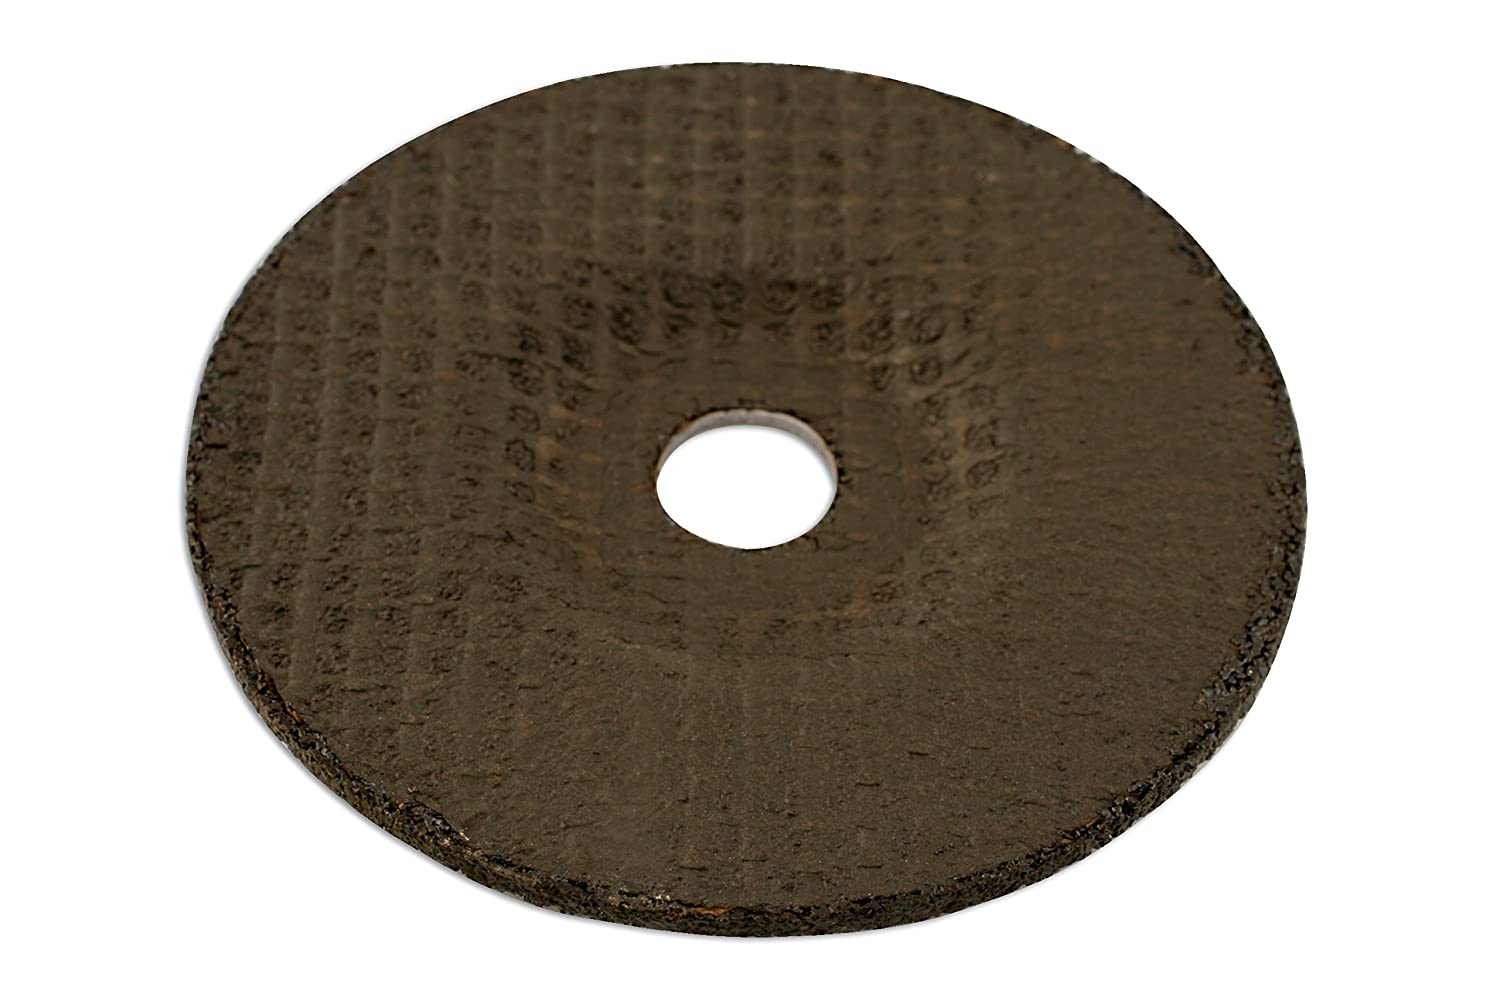 Connect 32062 115 x 3.2mm Abracs DPC Cutting Discs (Pack of 10) The Tool Connection Ltd.